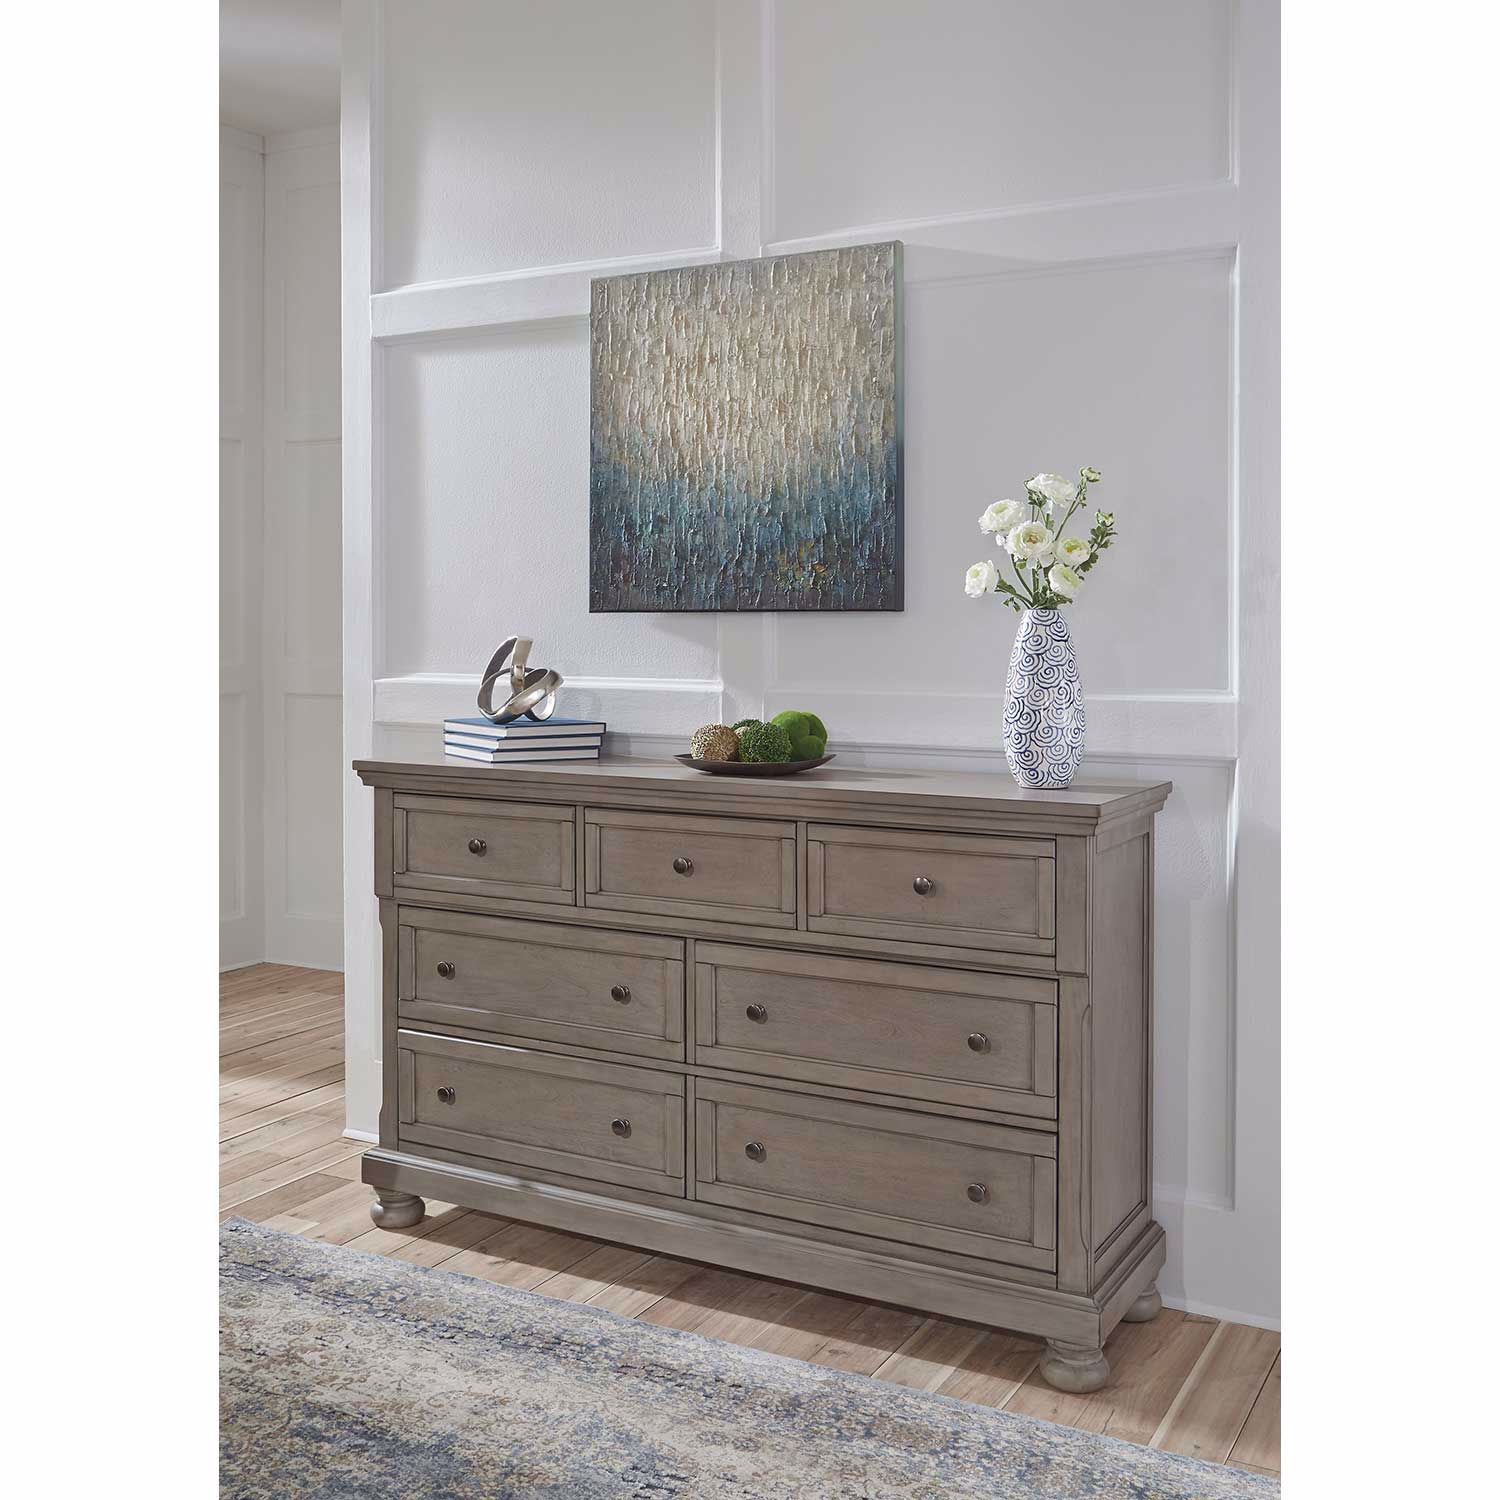 Picture of Lettner 7 Drawer Dresser